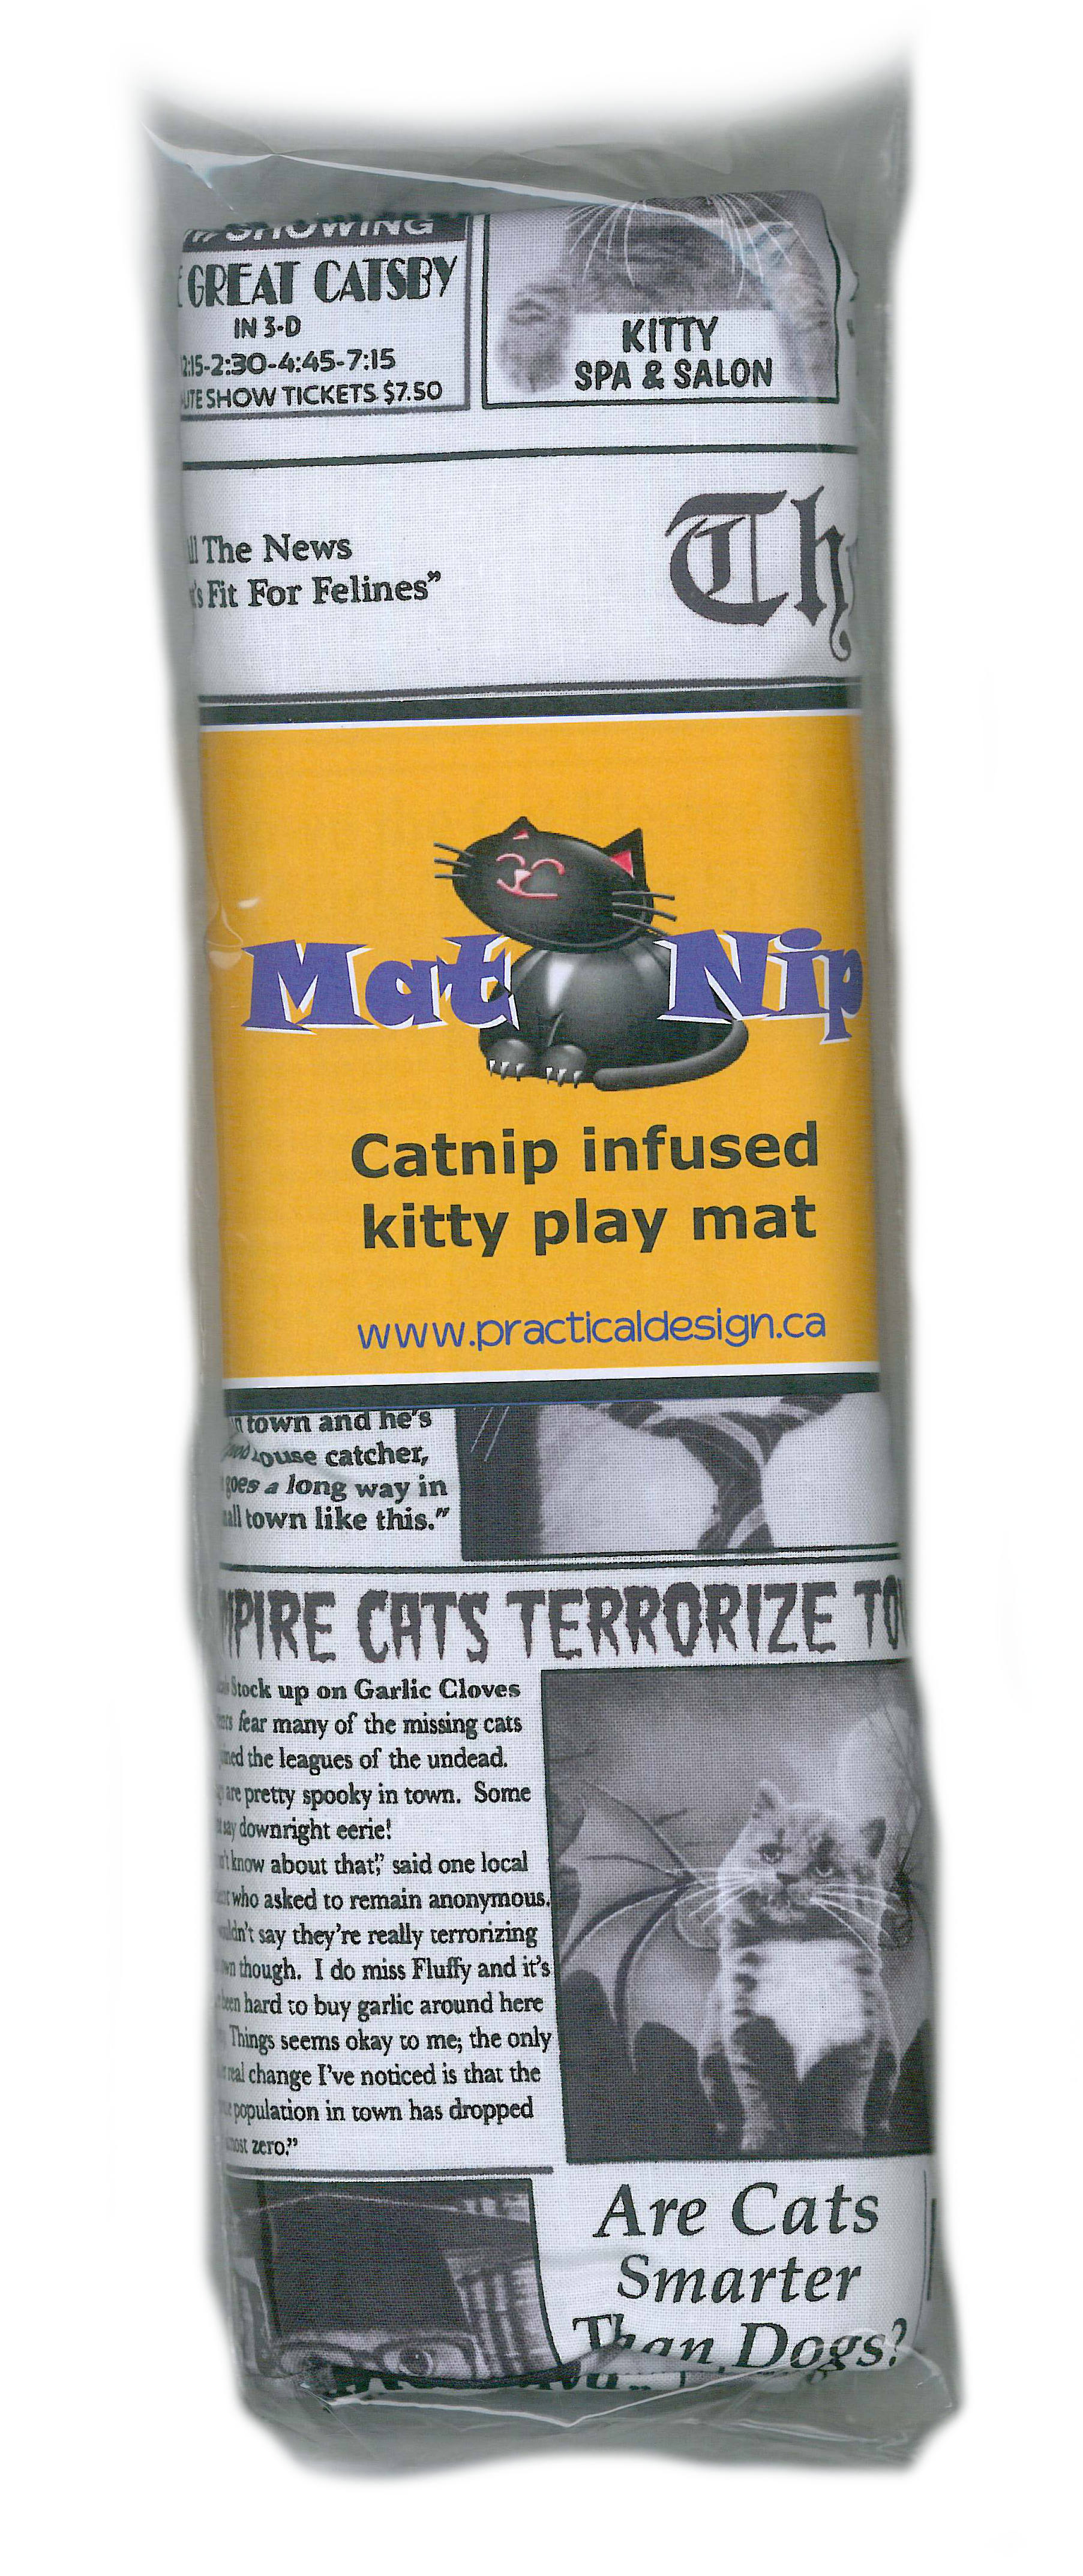 Mat Nip - Cat News